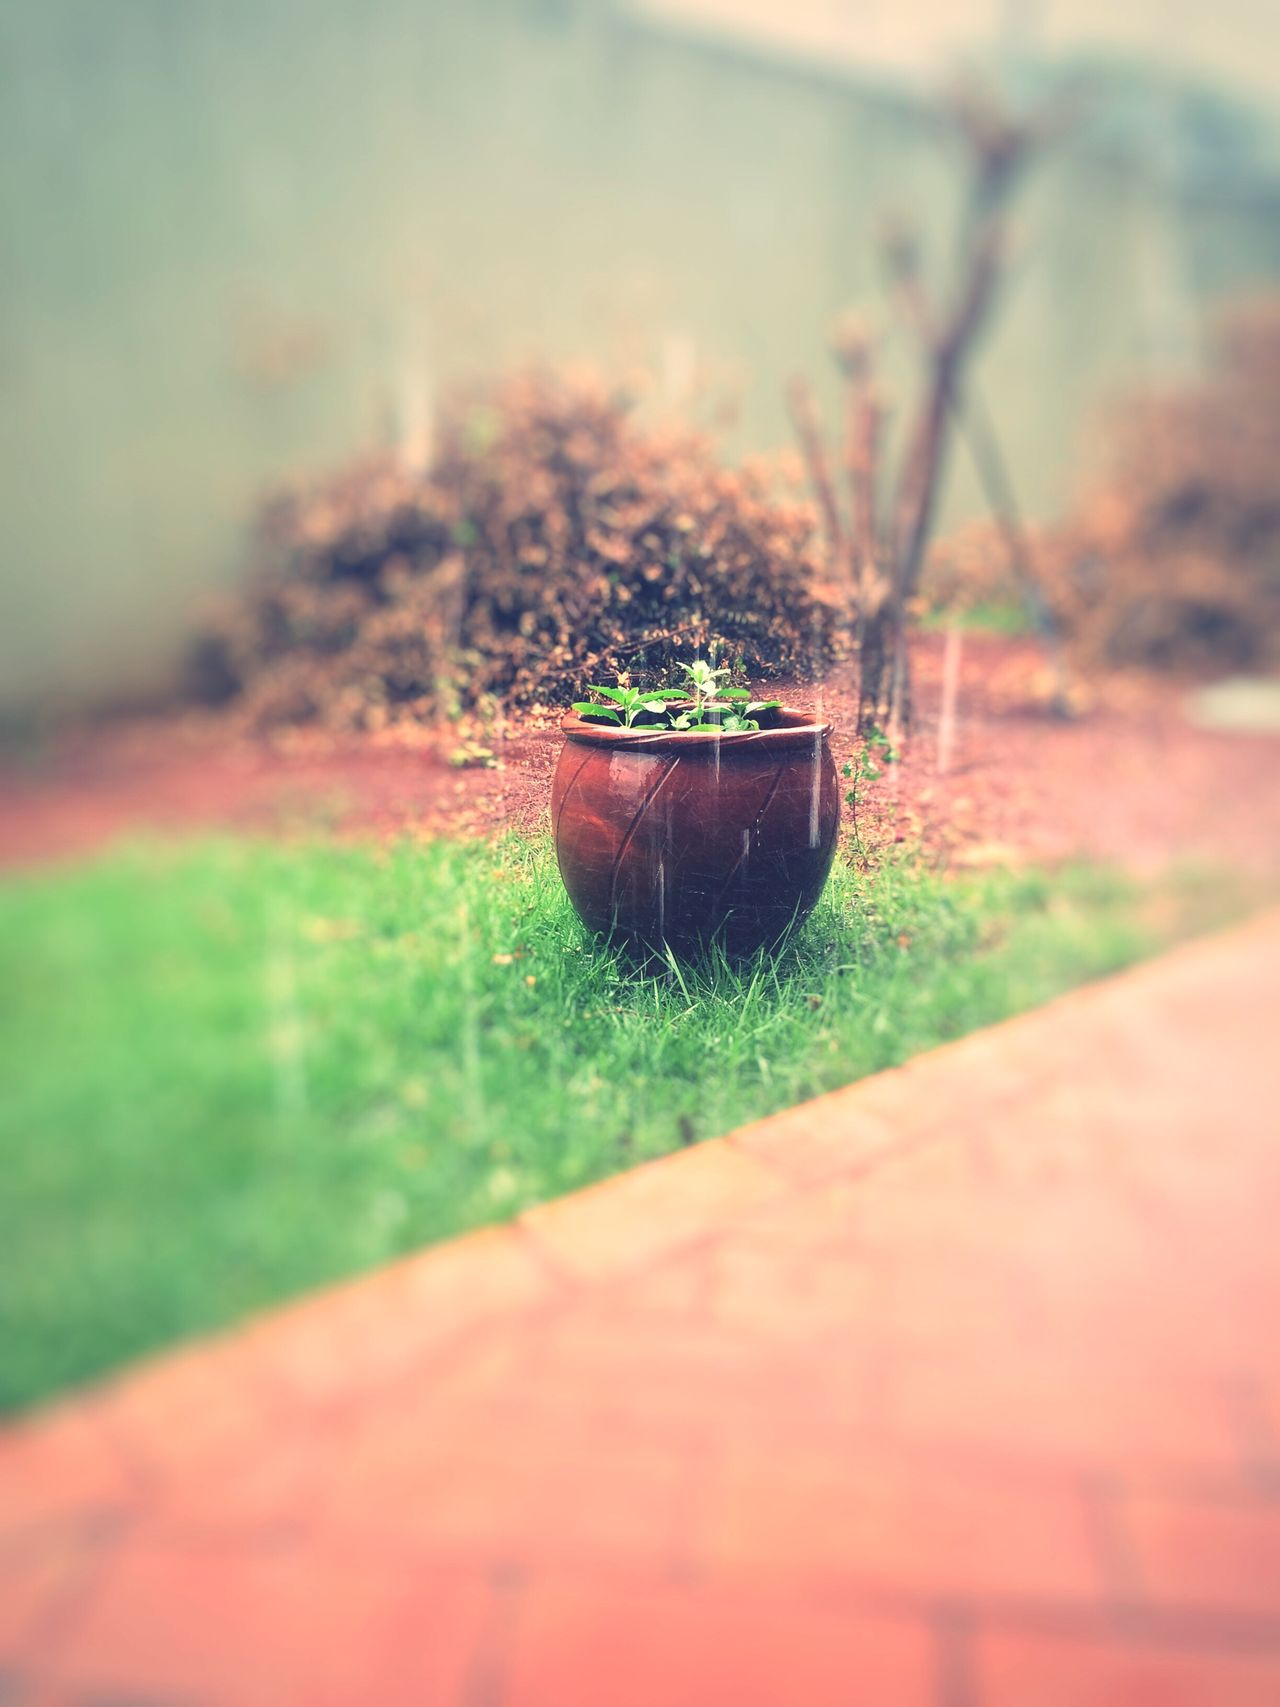 Plant Growth Nature Grass No People Green Color Outdoors Close-up Day Freshness